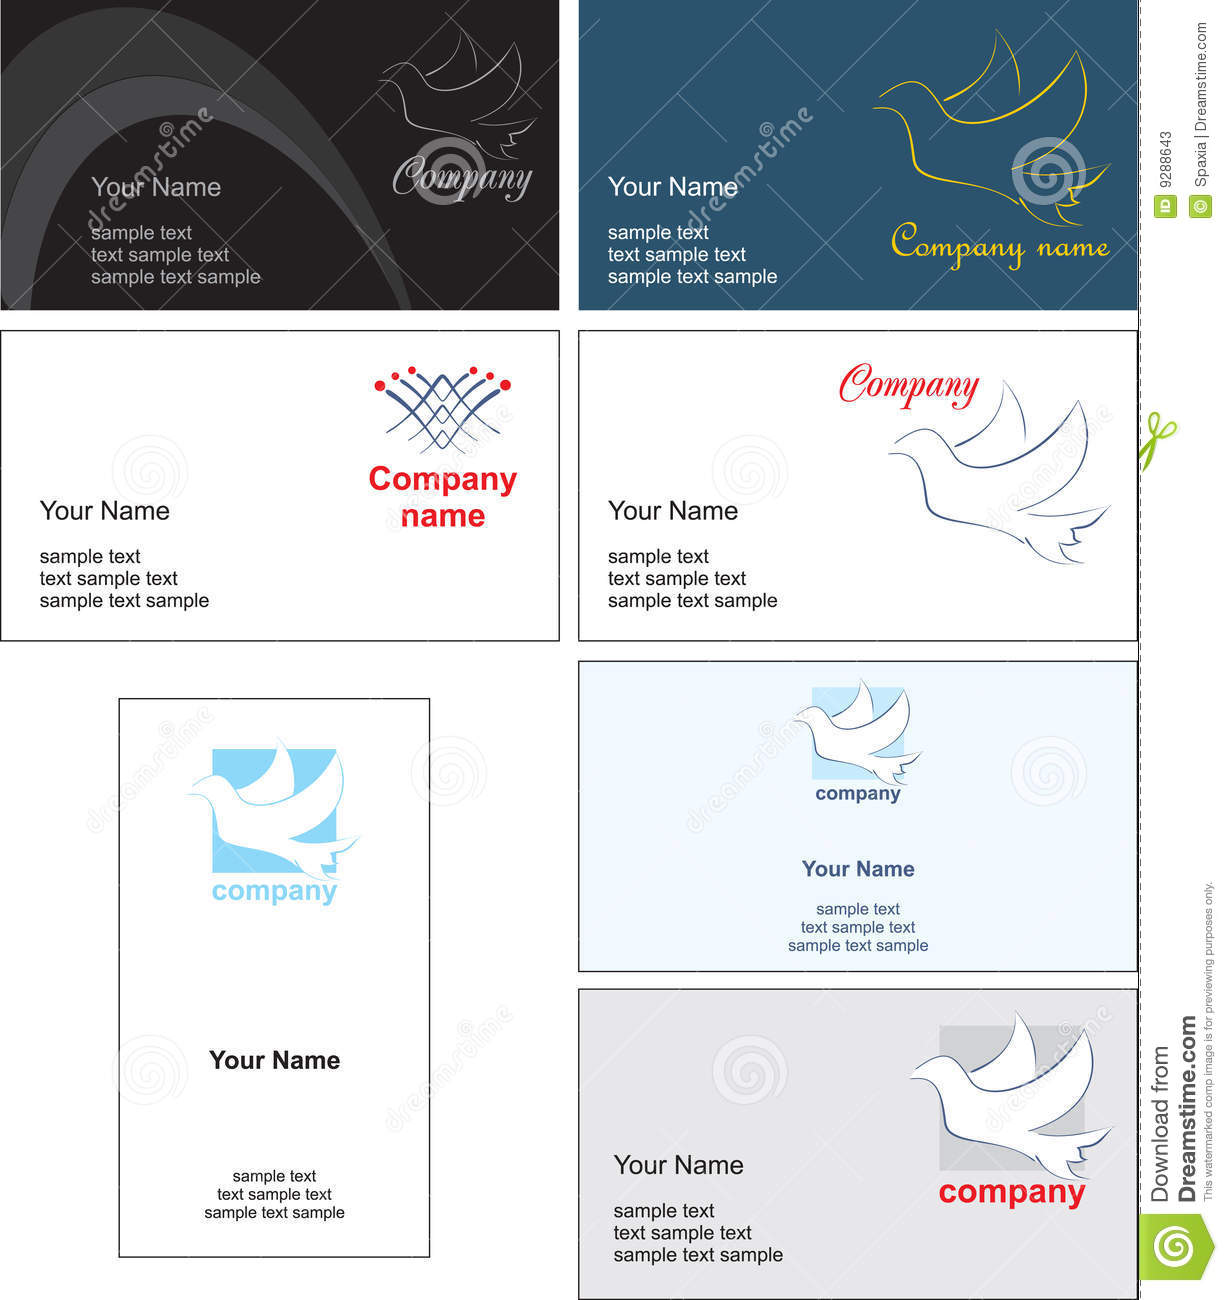 Fantastic 1 Page Resumes Thin 10 Envelope Template Indesign Regular 100 Day Plan Template 10x13 Envelope Template Youthful 16x20 Collage Template Blue18th Birthday Invitation Templates Business Card Template Design   Vector File Stock Photos   Image ..